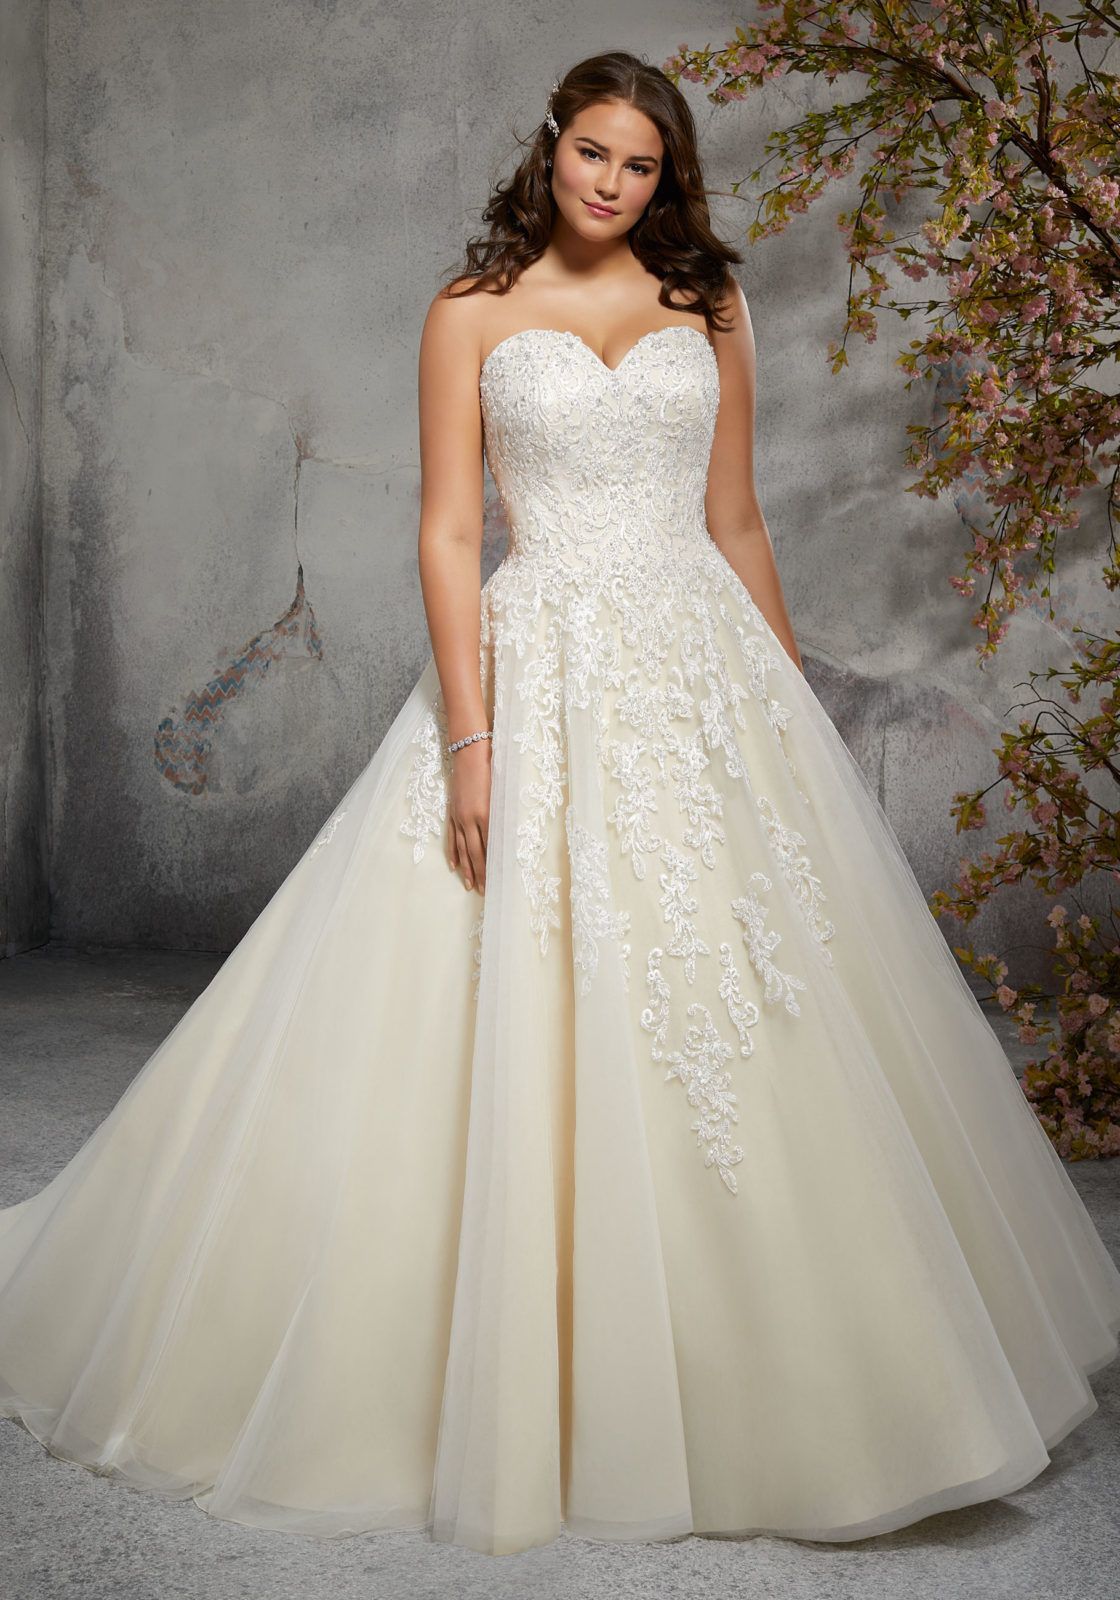 Top Wedding Dress Designers List